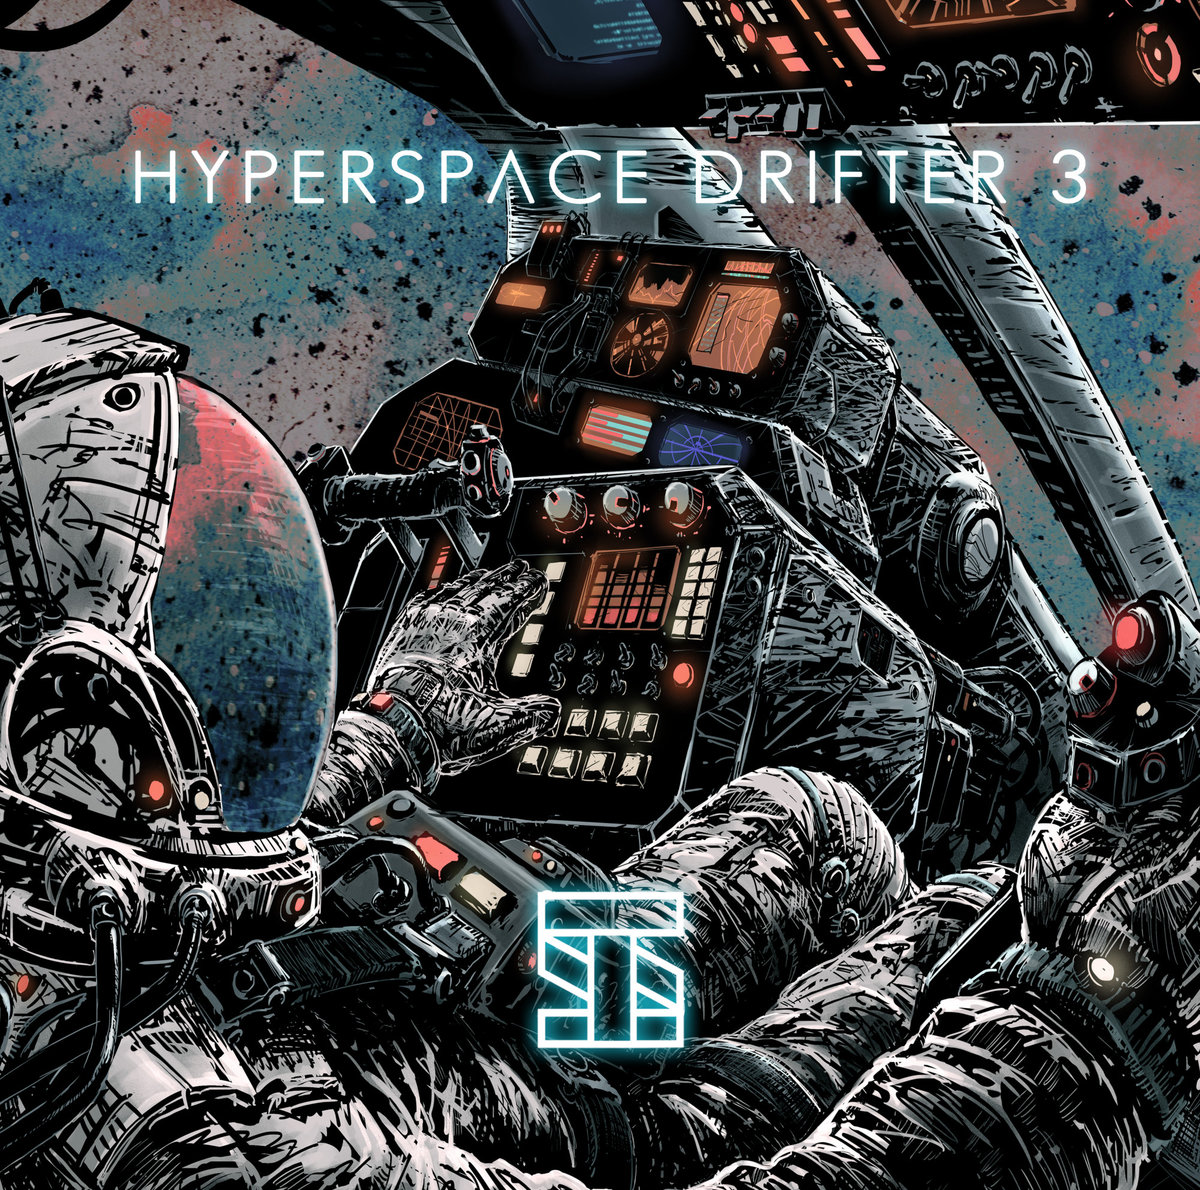 a3302445140 10 - Stilz - Hyperspace Drifter 3 Review